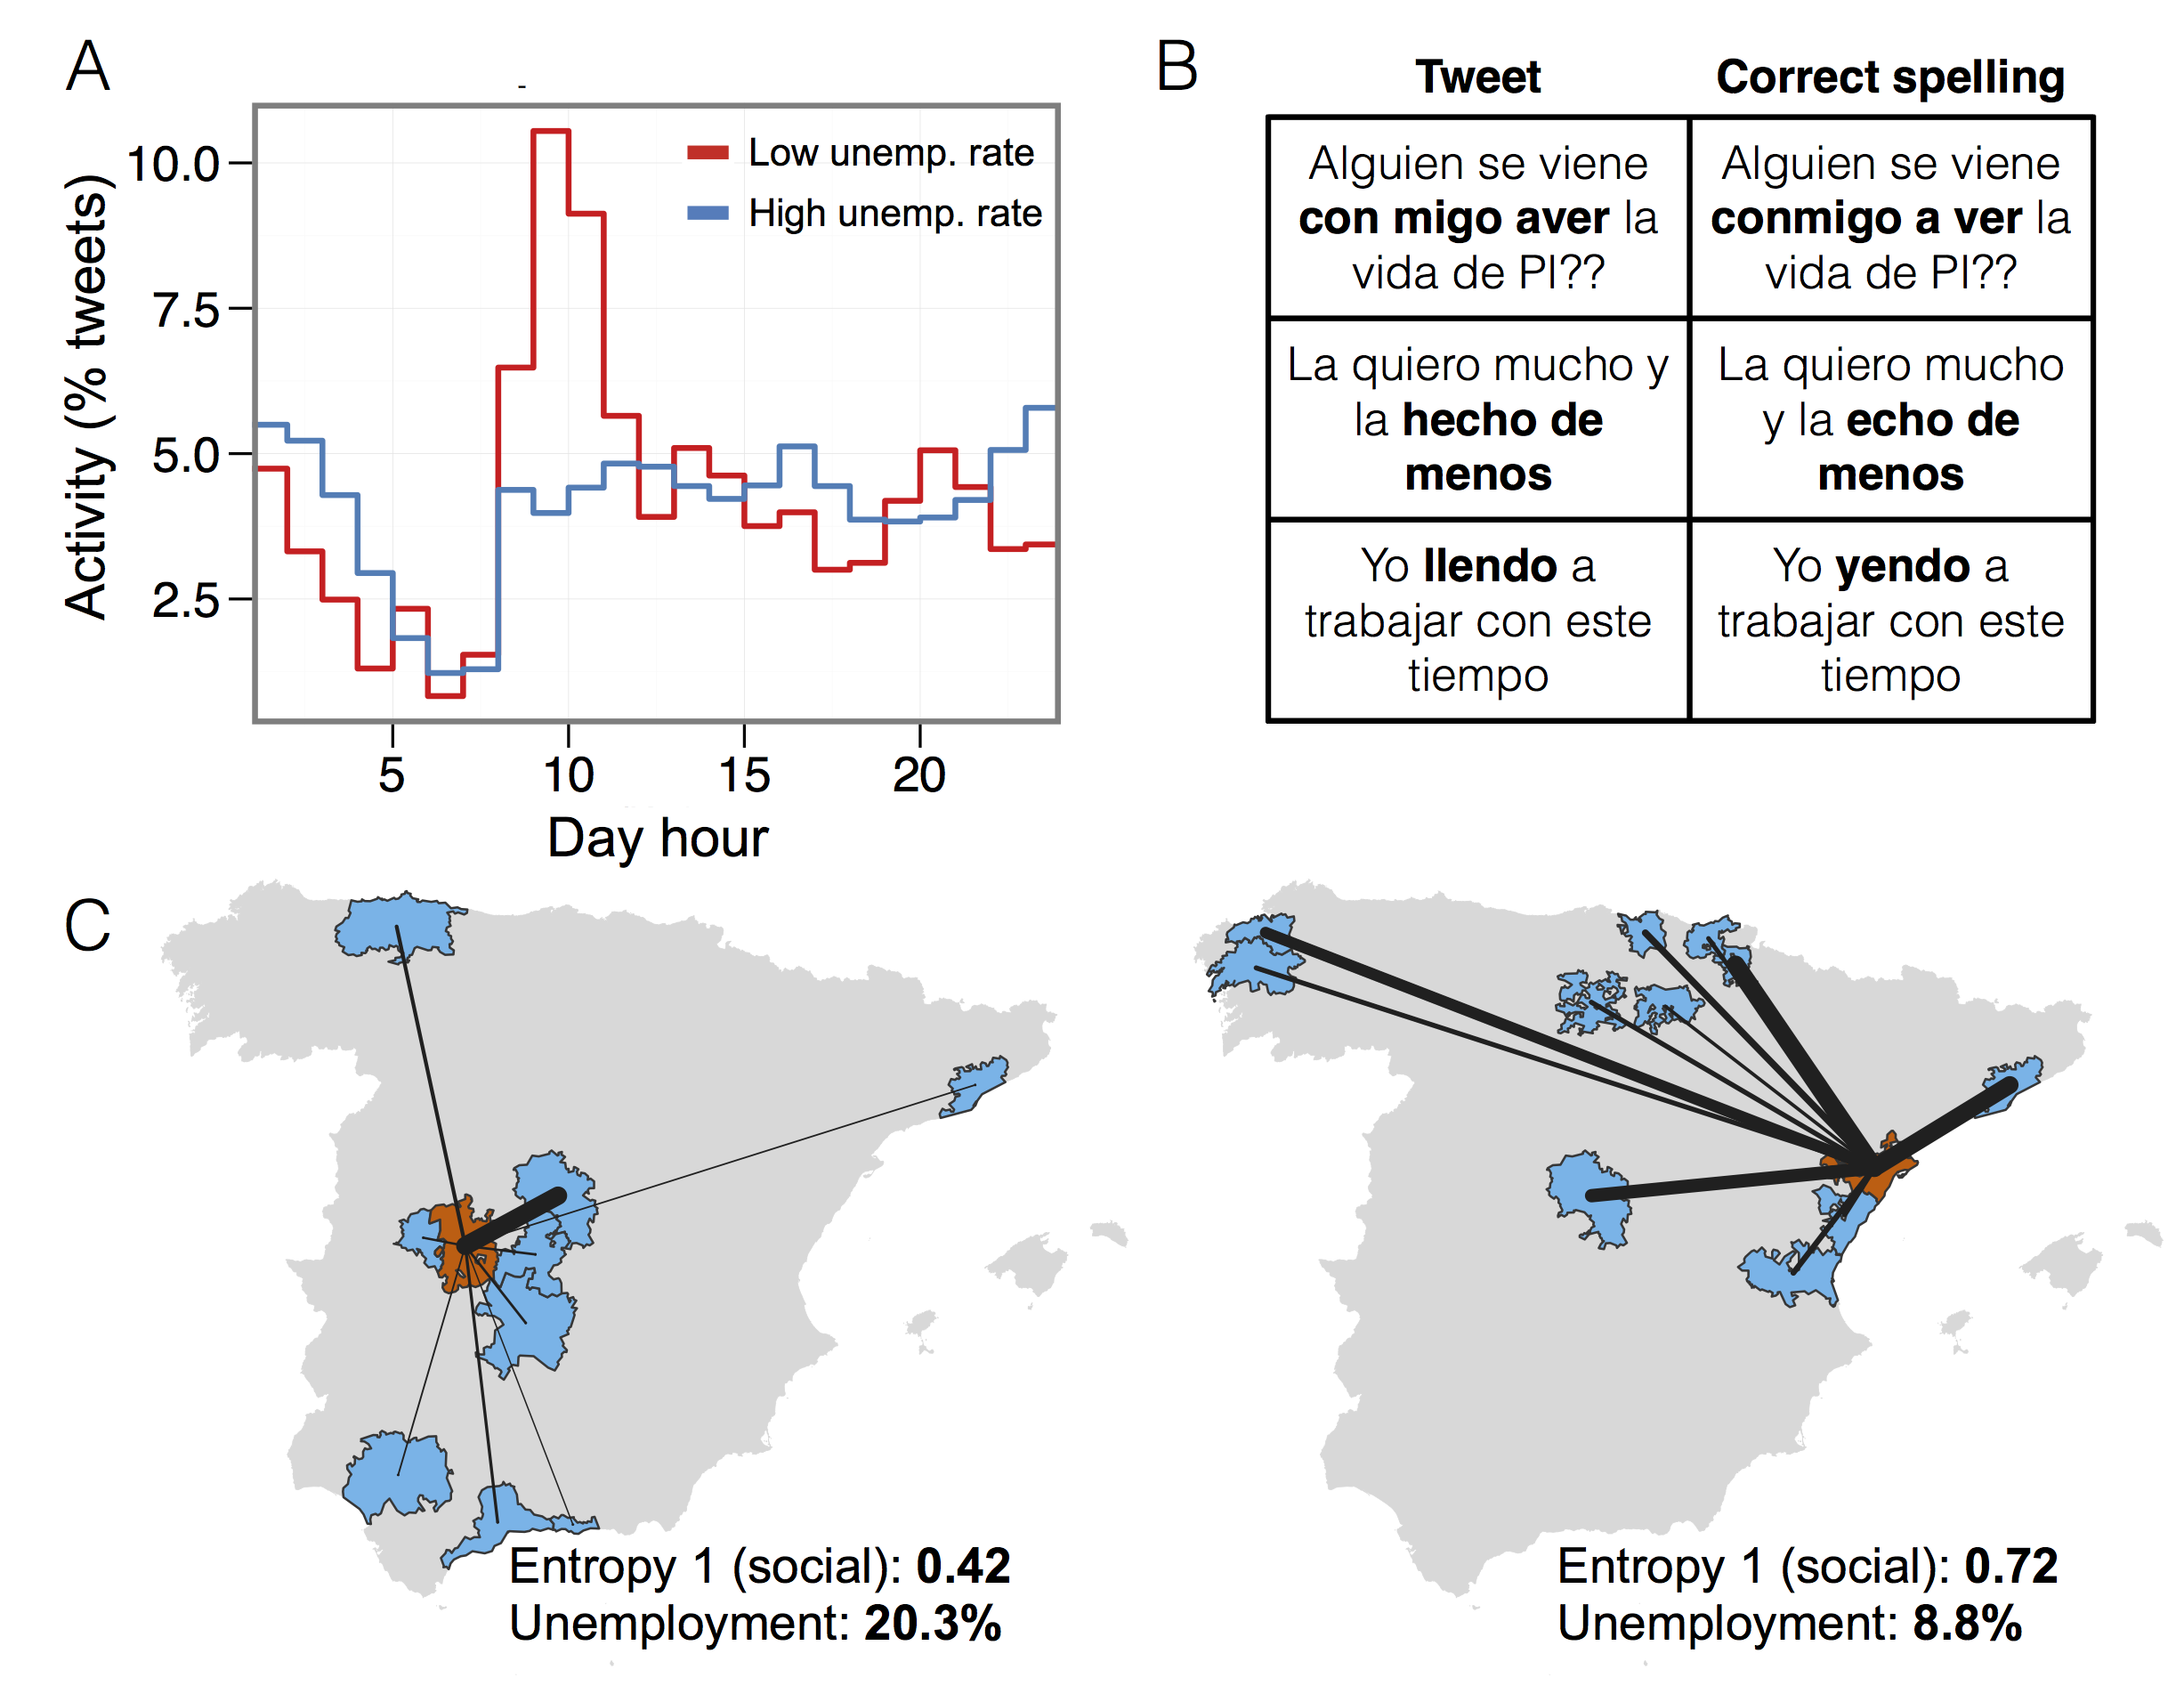 """Examples of different behaviour in the observed variables and the unemployment. In A, we observe that two cities with different unemployment levels have different temporal activity patterns. Figure C show how communities (red) with distinct entropy levels of social communication with other communities (blue) may hold different unemployment intensity: left map shows a highly focused communication pattern (low entropy) while right map correspond to a community with a diverse communication pattern (high entropy). Finally, figure B shows some examples of detected misspellings in our database using 618 incorrect expressions (see SI Section 6) such as """"Con migo"""", """"Aver"""" or """"llendo""""."""